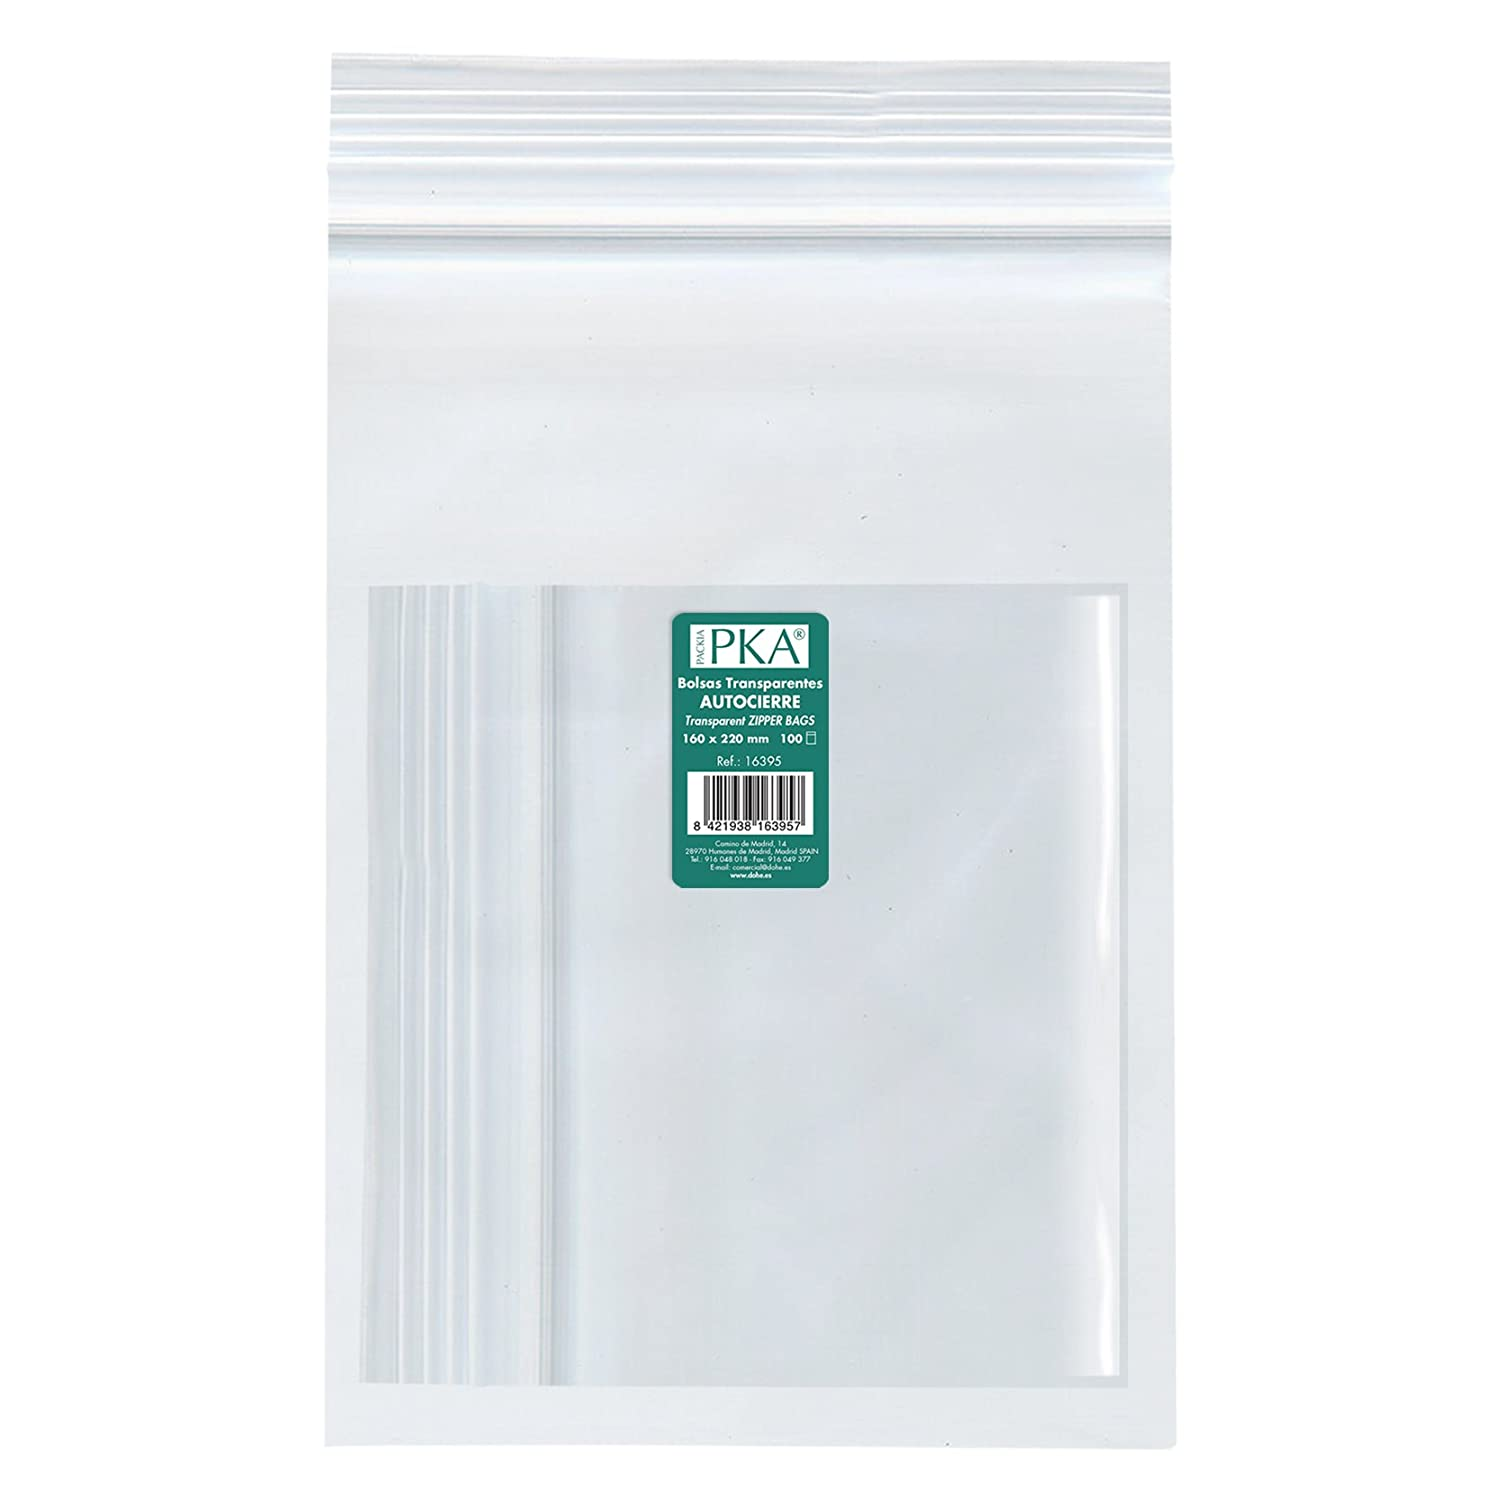 Amazon.com : PKA 16397 - Pack of 100 Re-sealable Plastic ...